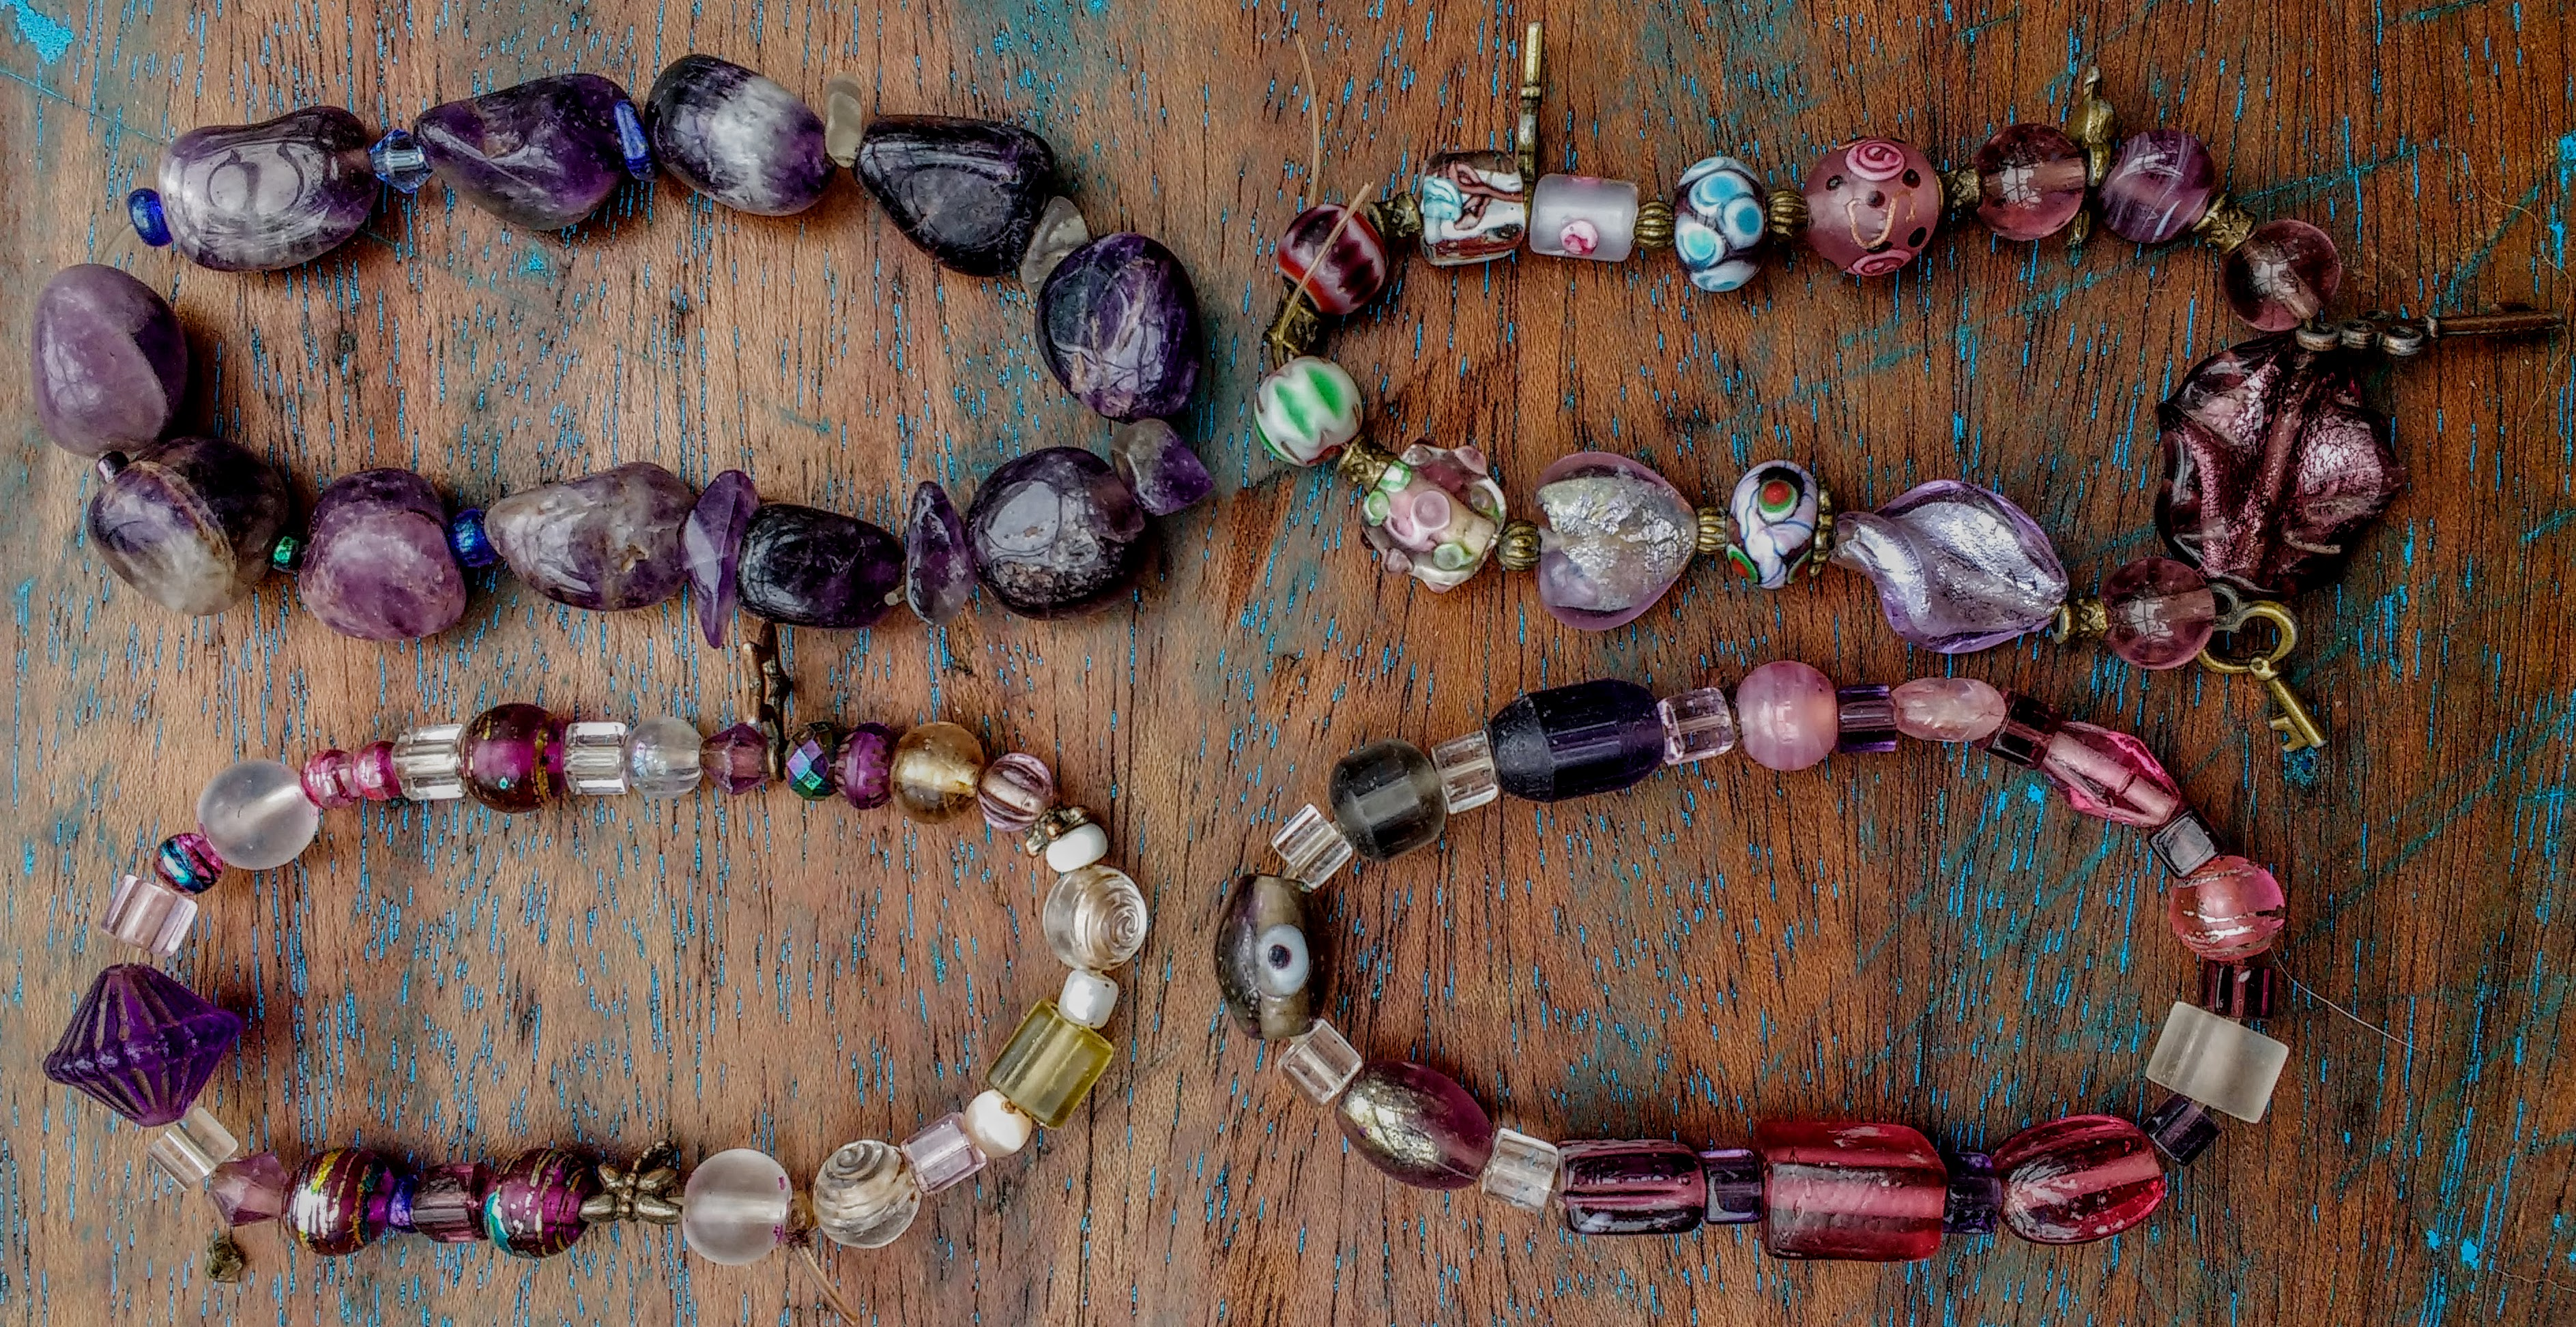 Shades of purple glass and stones with a few acrylic beads and charms. Sold.